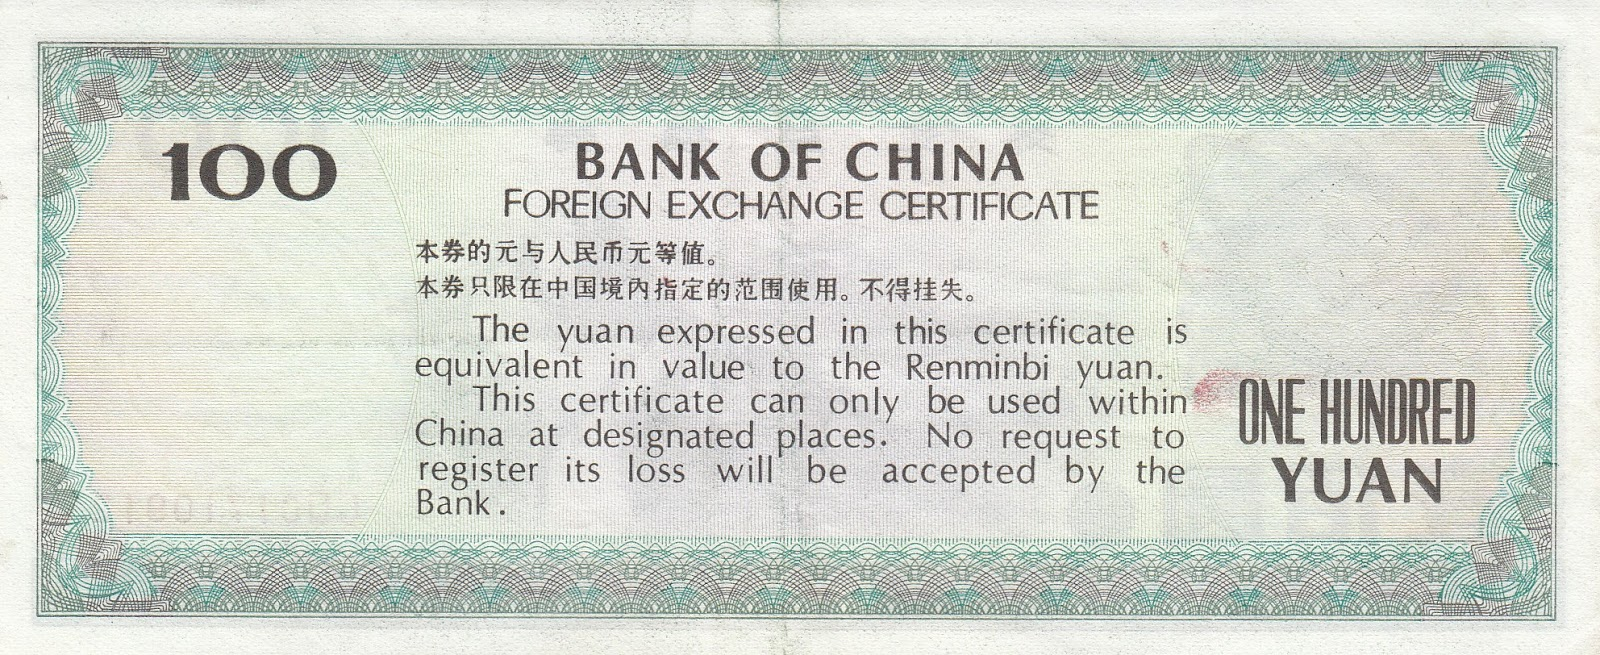 Foreign exchange certificates part 2 peoples republic of china foreign exchange certificates part 2 peoples republic of china xflitez Image collections